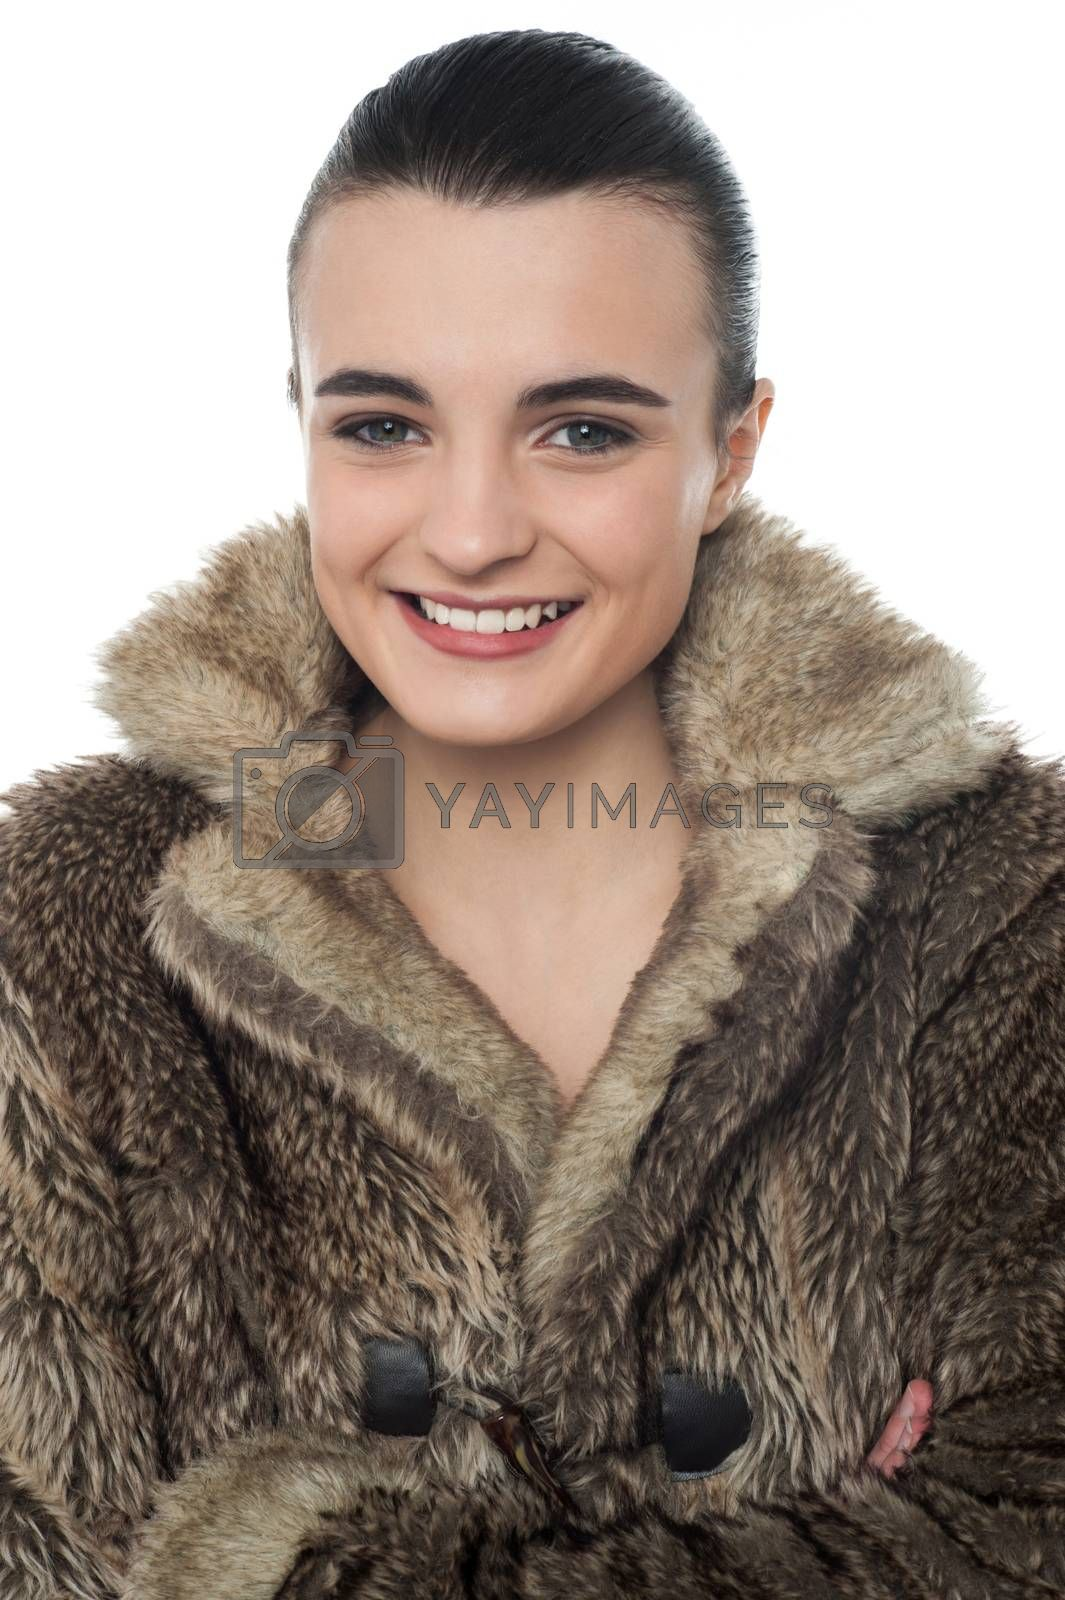 Image of a stylish young girl in fur jacket